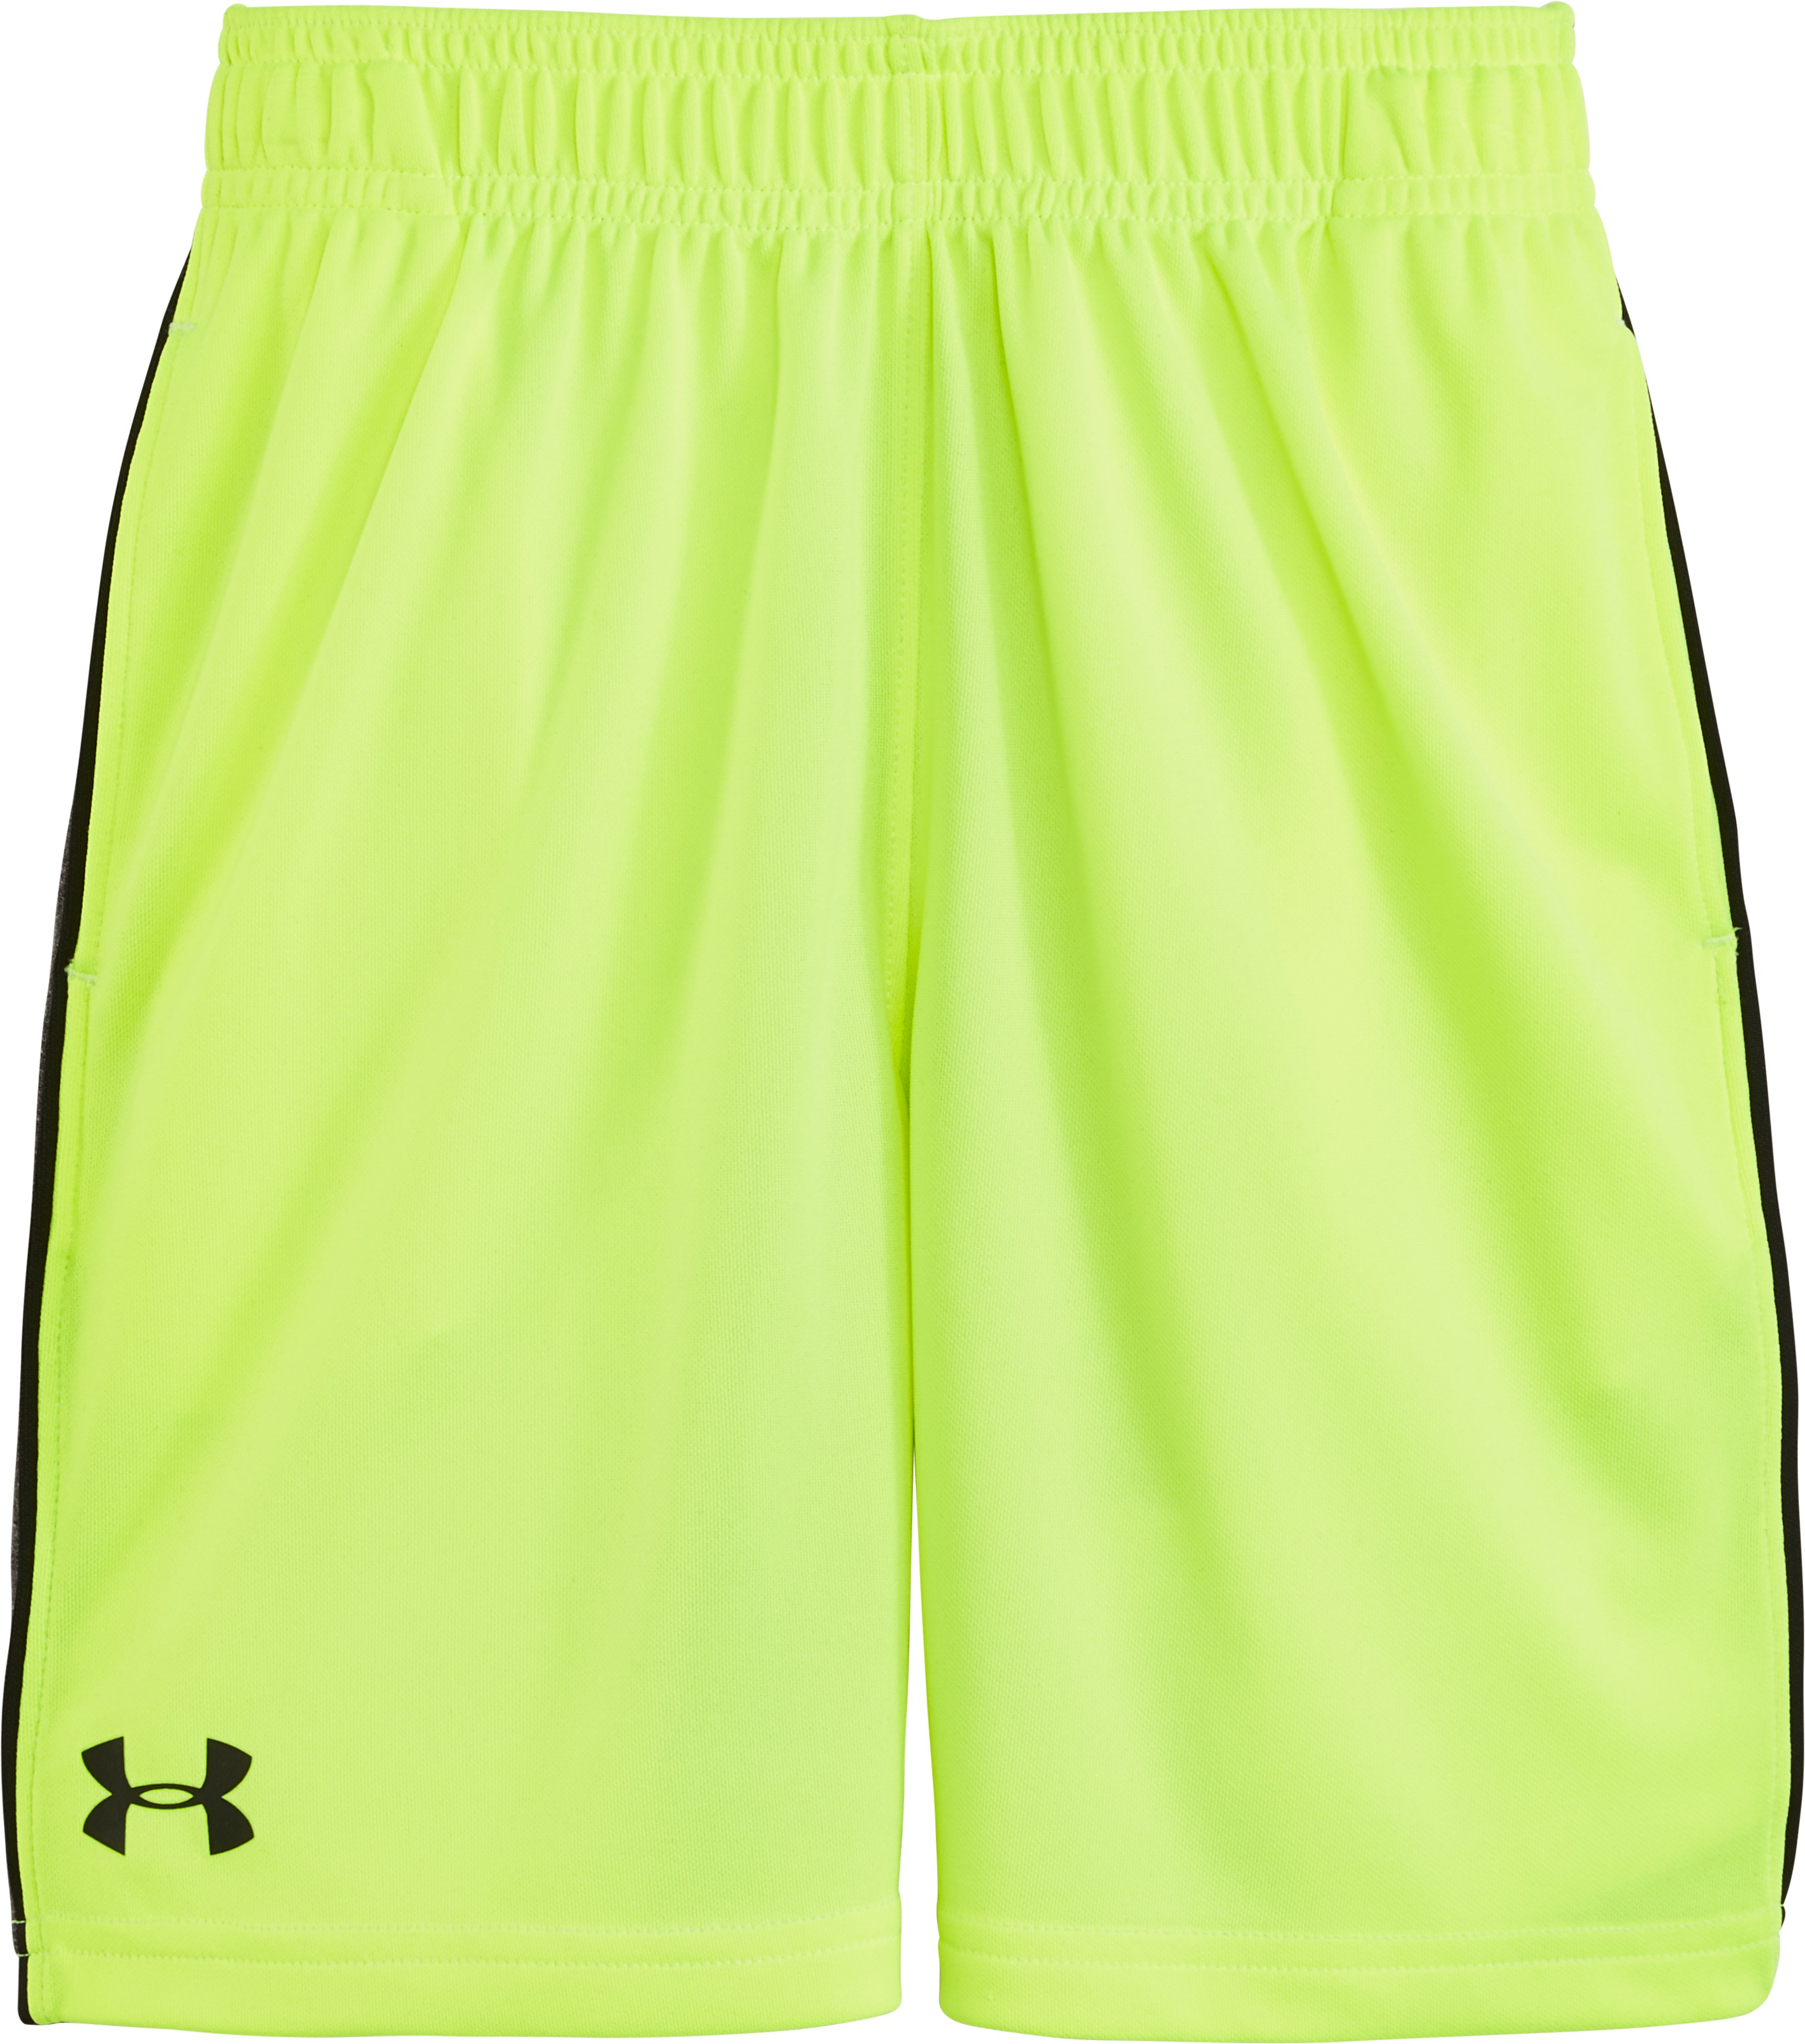 Boys' Pre-School UA Zinger Shorts, FUEL GREEN, zoomed image